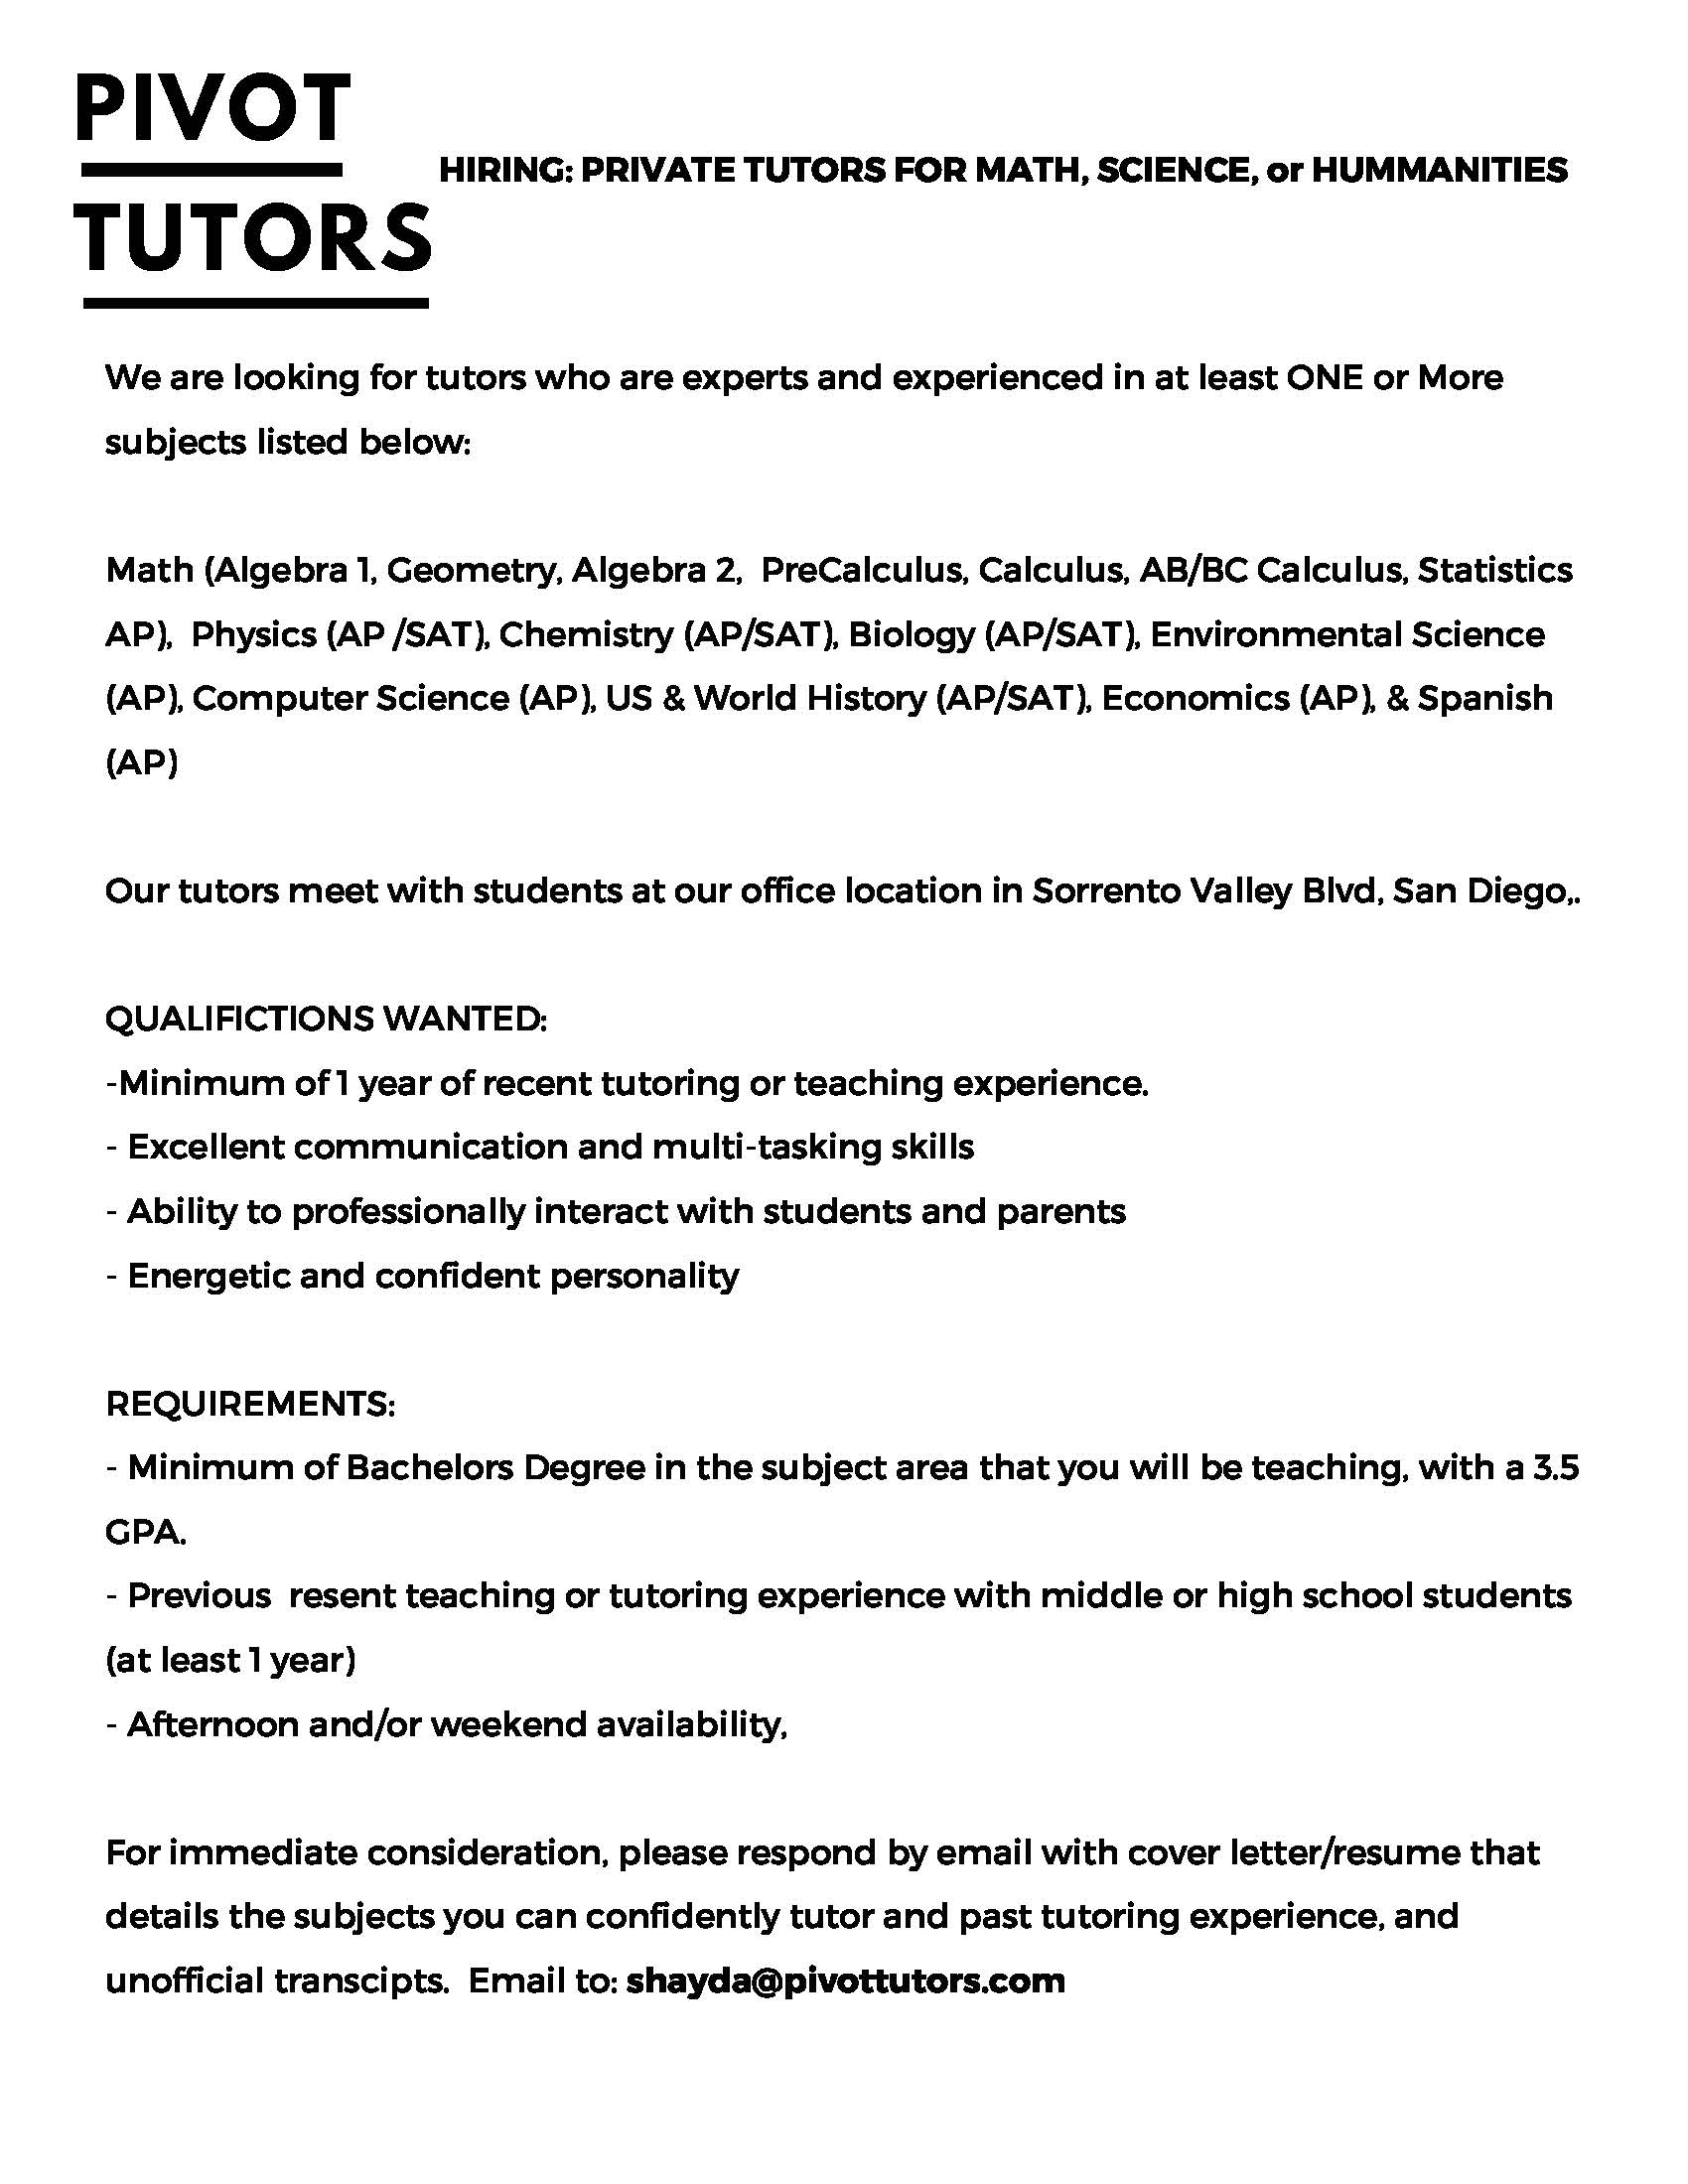 Local Private Tutoring Position at Pivot Tutors, LLC | UCSD ...